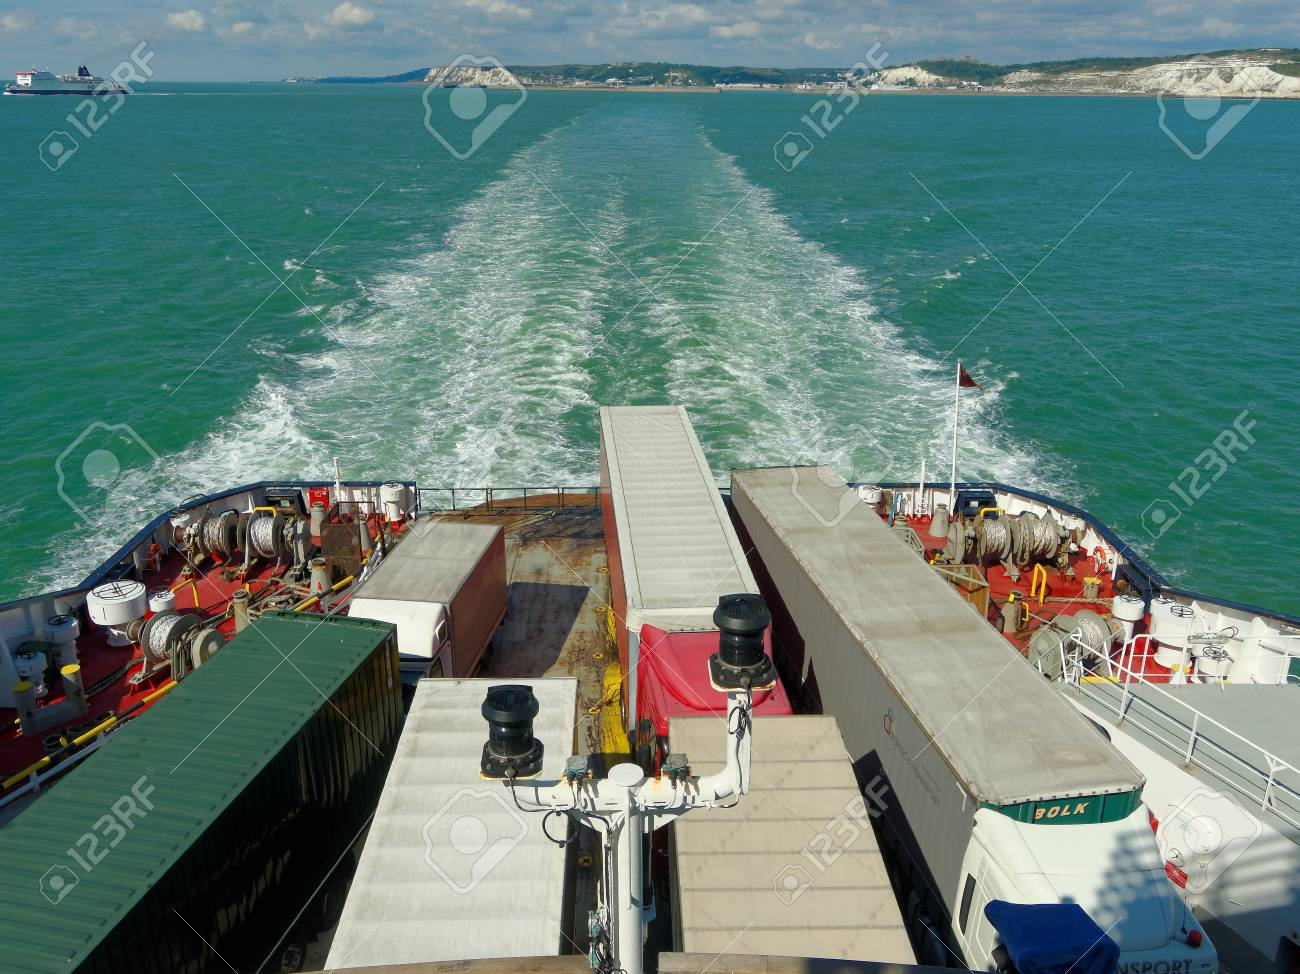 Trucks on ferry floats by English Channel on a sunny day